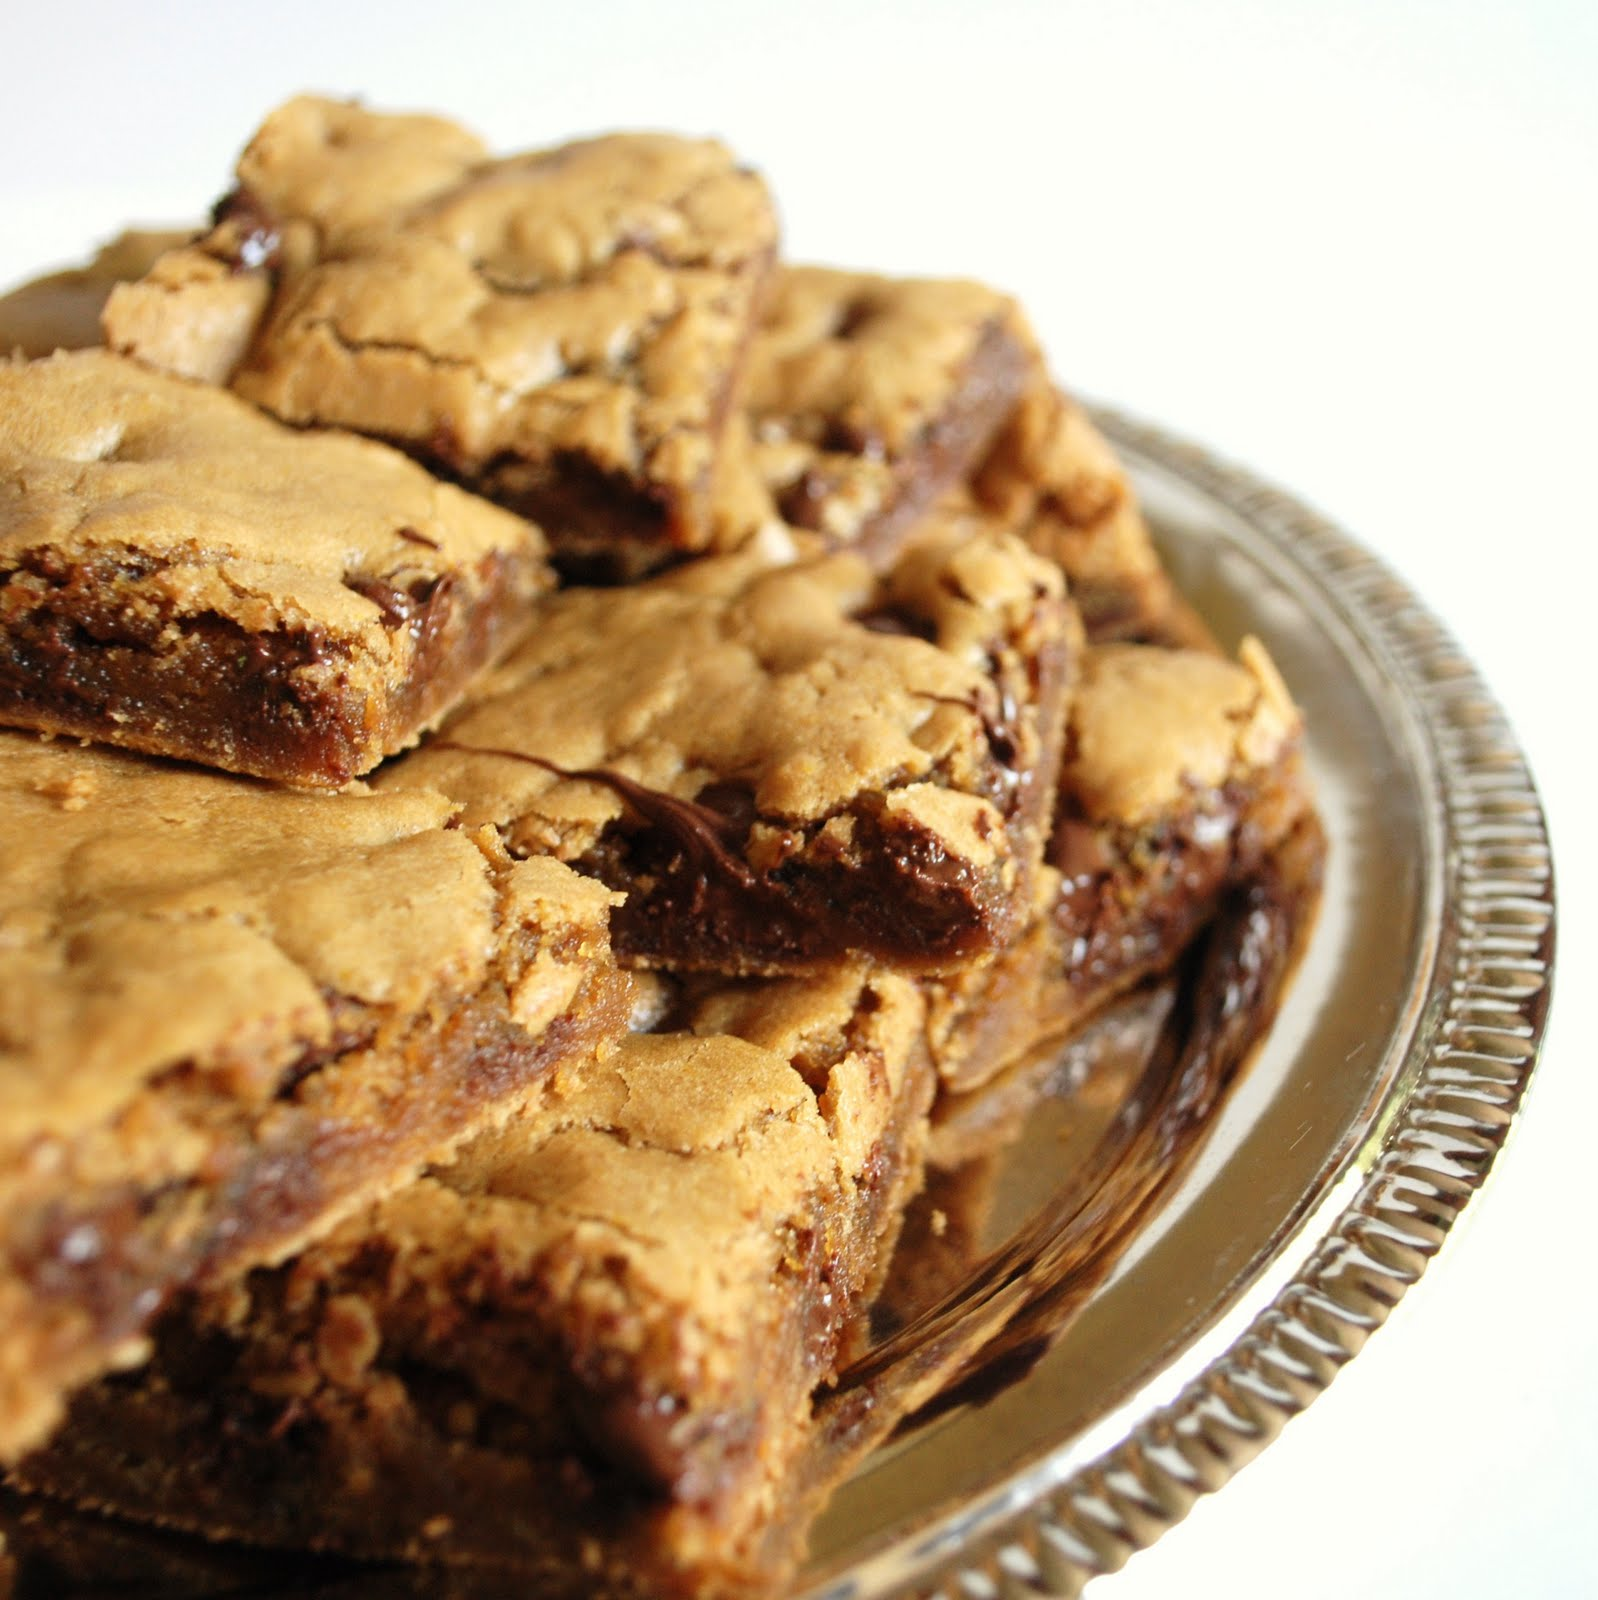 Domestic Bliss: From the Kitchen: Blonde Brownies